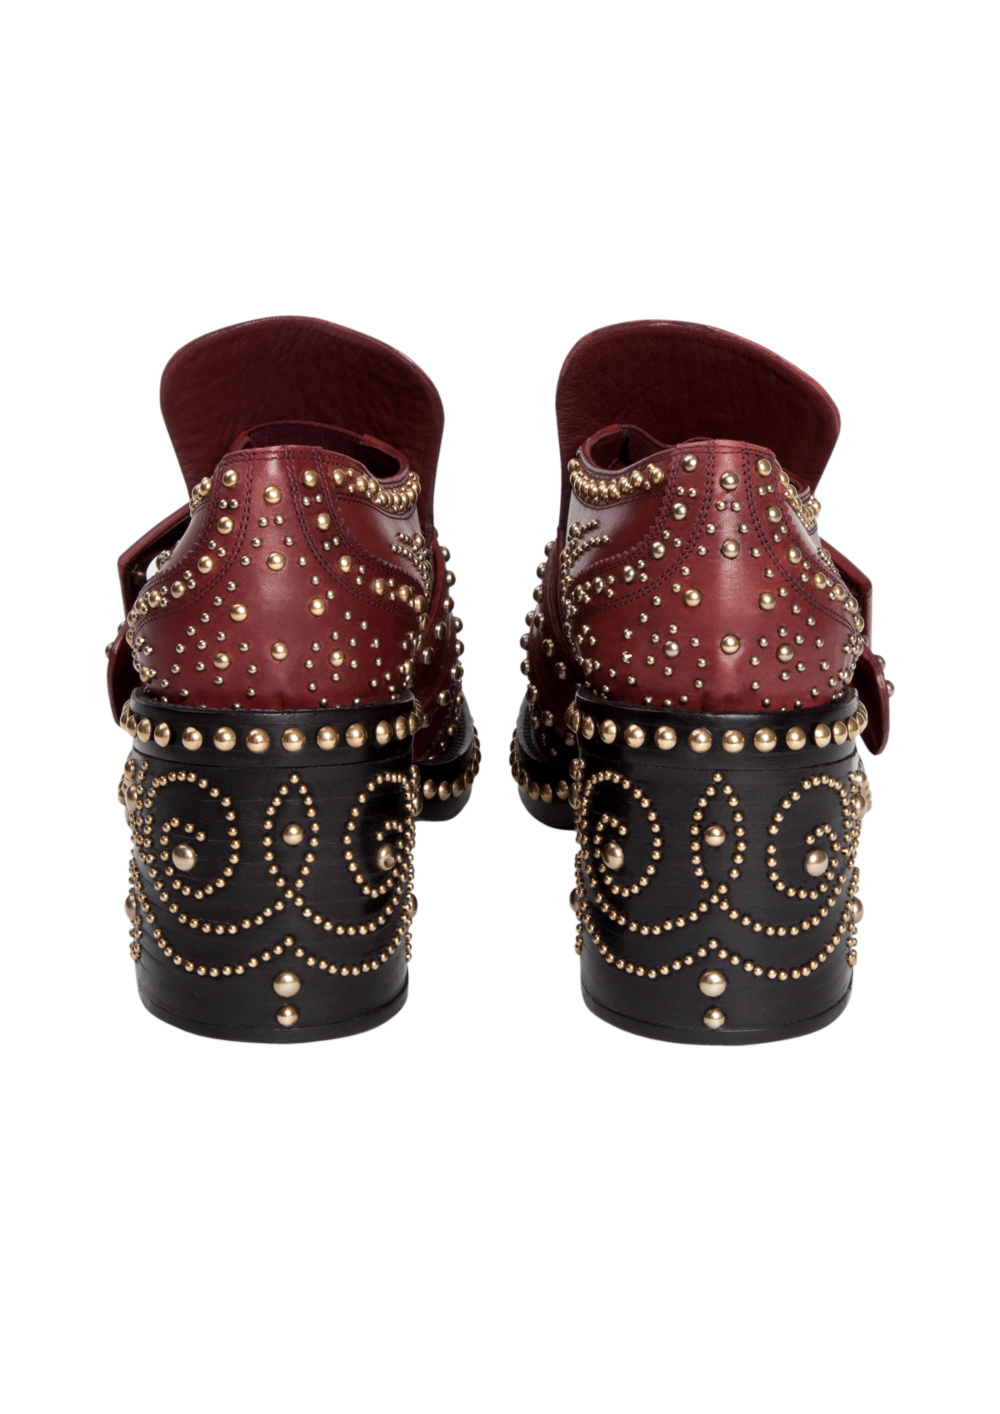 miumiu-shoes-redstud-14.png